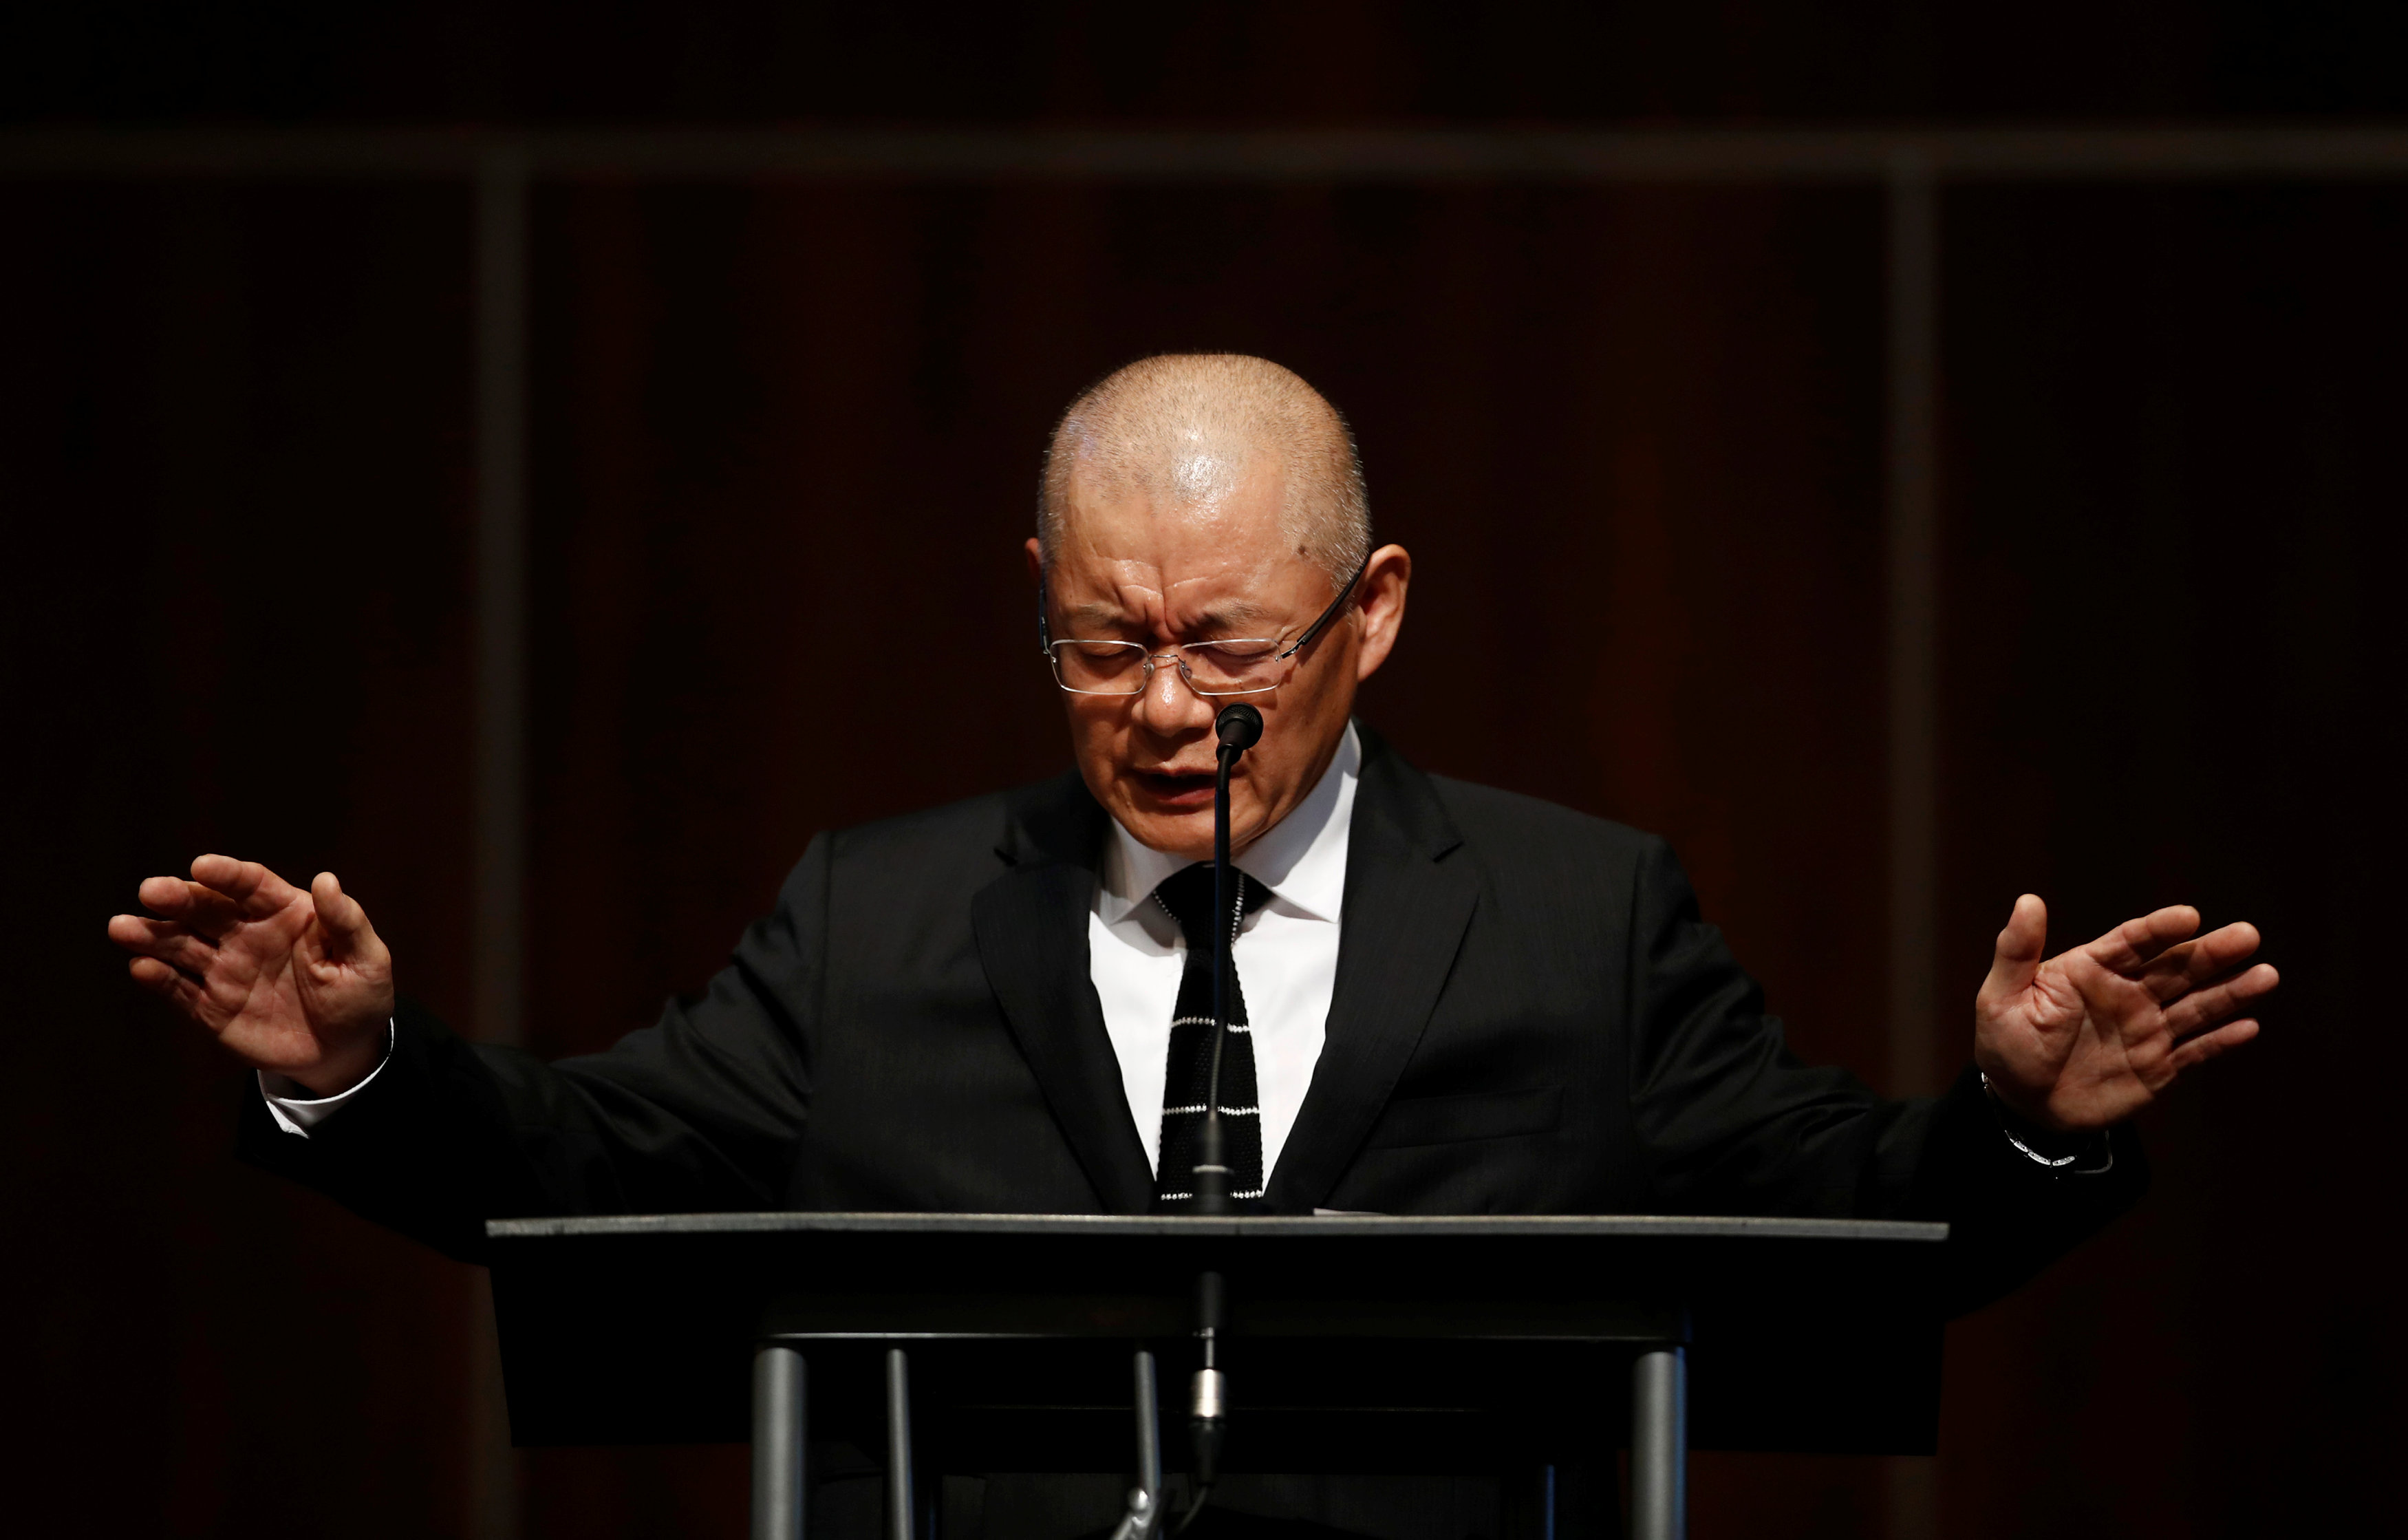 Pastor Hyeon Soo Lim, who returned to Canada from North Korea after the DPRK released Lim on August 9, after being held for 31 months, offers benediction at the Light Presbyterian Church in Mississauga, Ontario, Canada on August 13, 2017. (REUTERS/Mark Blinch)